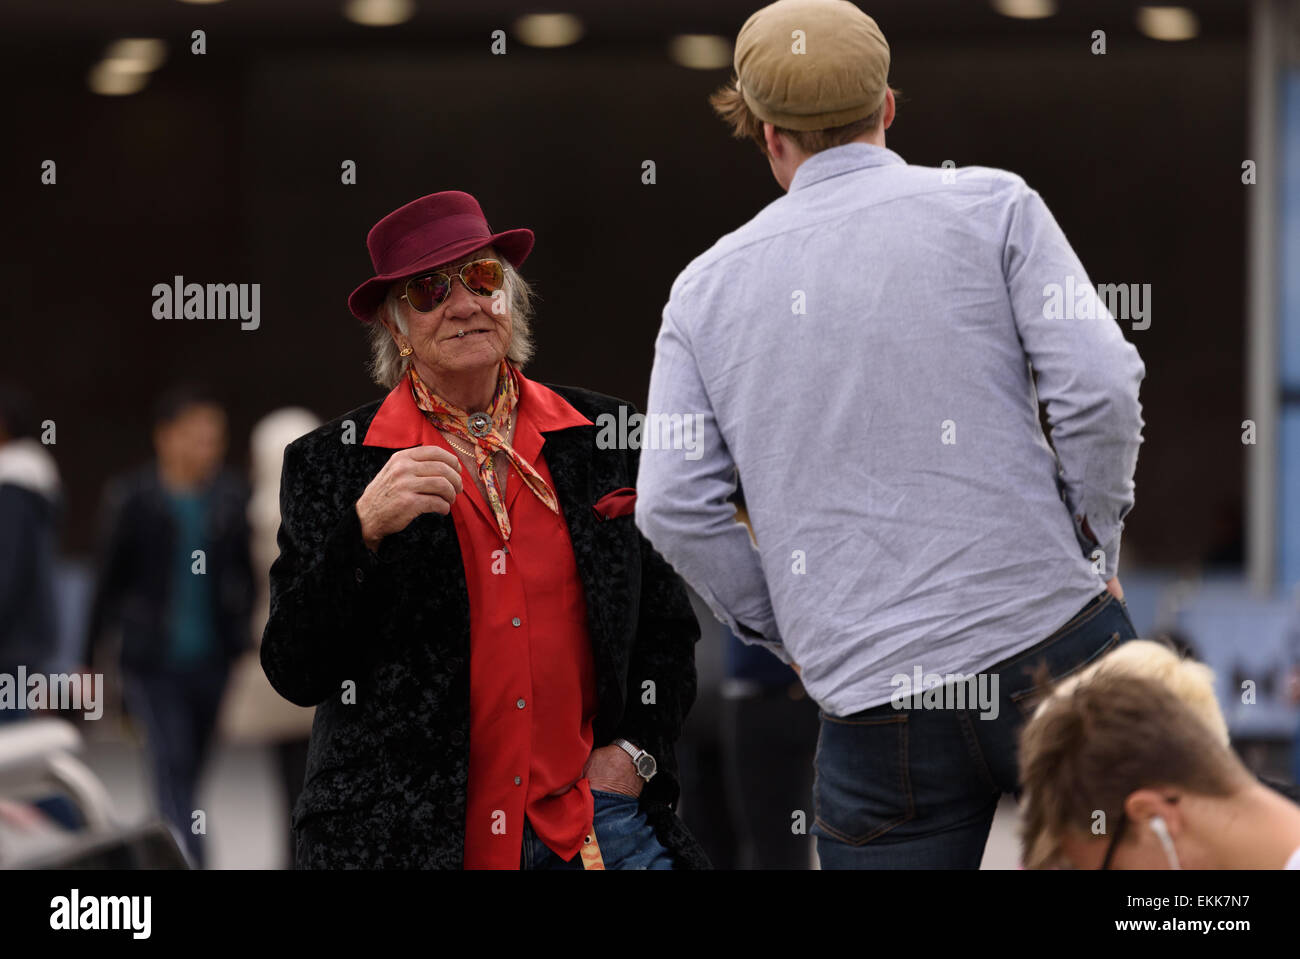 Dapper, colorful gentleman chatting and smoking in Piccadilly Gardens Manchester 11th April 2015 - Stock Image